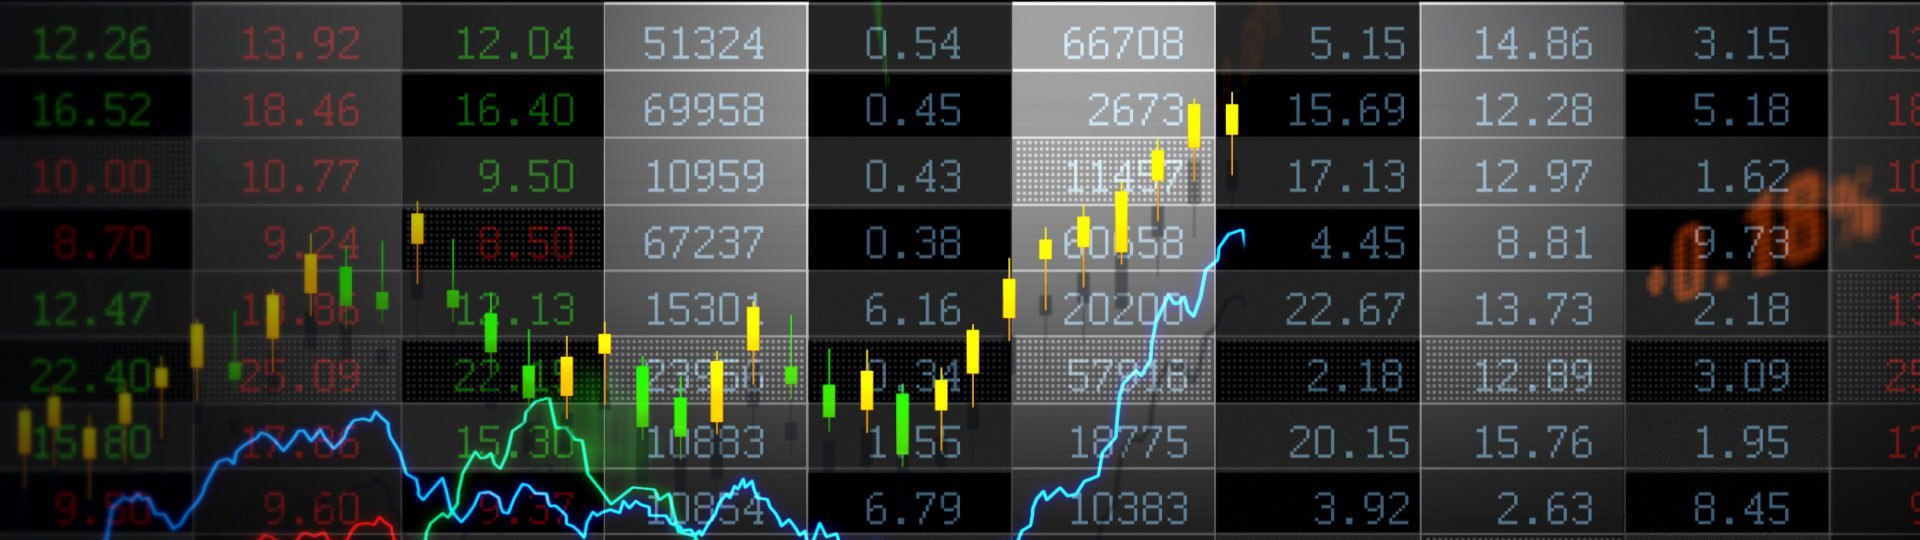 Stock Market_075 | Stock market trend of animation. Seamless loop. HD1080. - ID:17105